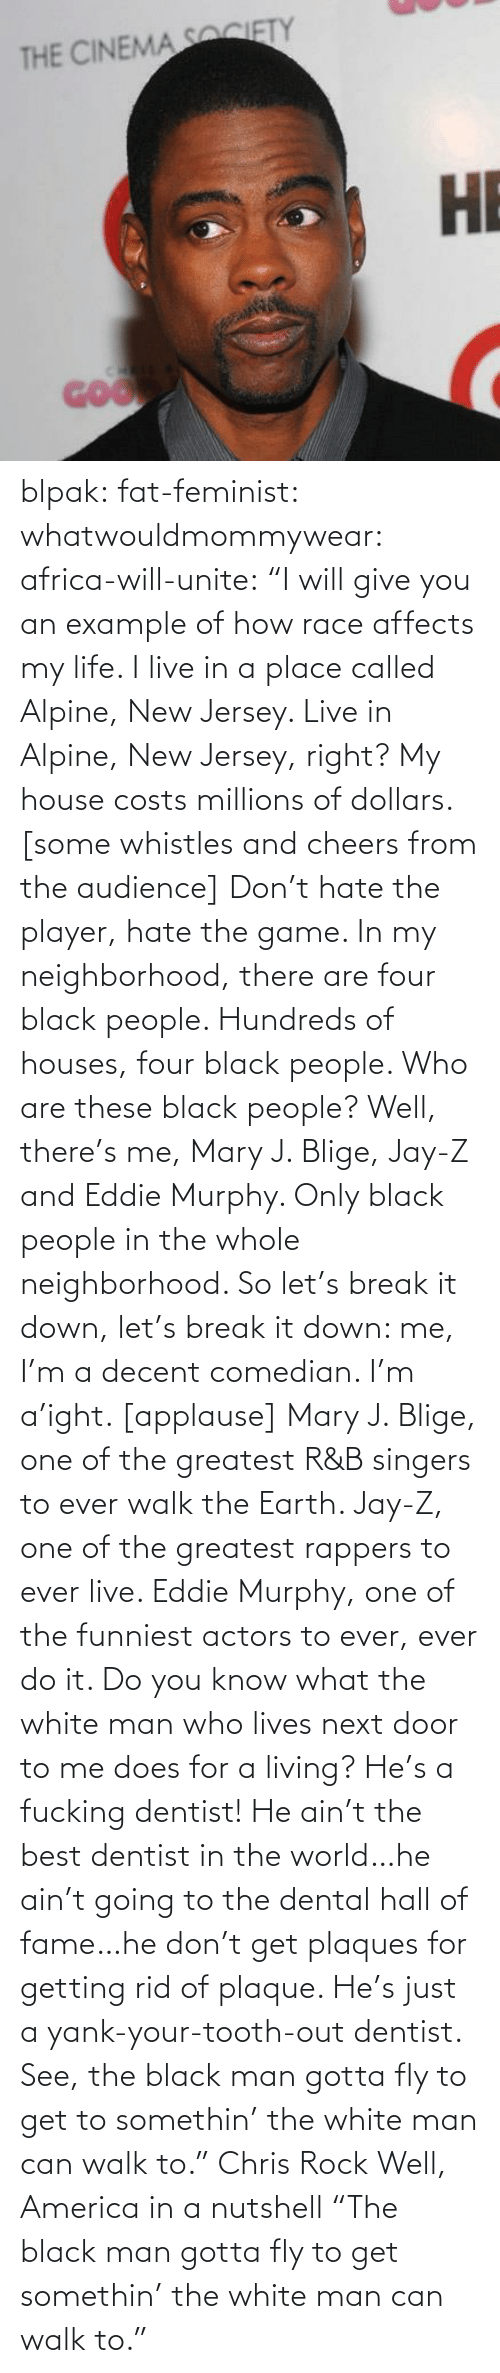 """mary j: THE CINEMA SOCIETY  НЕ  GOO blpak:  fat-feminist:  whatwouldmommywear:  africa-will-unite:  """"I will give you an example of how race affects my life. I live in a place called Alpine, New Jersey. Live in Alpine, New Jersey, right? My house costs millions of dollars. [some whistles and cheers from the audience] Don't hate the player, hate the game. In my neighborhood, there are four black people. Hundreds of houses, four black people. Who are these black people? Well, there's me, Mary J. Blige, Jay-Z and Eddie Murphy. Only black people in the whole neighborhood. So let's break it down, let's break it down: me, I'm a decent comedian. I'm a'ight. [applause] Mary J. Blige, one of the greatest R&B singers to ever walk the Earth. Jay-Z, one of the greatest rappers to ever live. Eddie Murphy, one of the funniest actors to ever, ever do it. Do you know what the white man who lives next door to me does for a living? He's a fucking dentist! He ain't the best dentist in the world…he ain't going to the dental hall of fame…he don't get plaques for getting rid of plaque. He's just a yank-your-tooth-out dentist. See, the black man gotta fly to get to somethin' the white man can walk to."""" Chris Rock  Well, America in a nutshell  """"The black man gotta fly to get somethin' the white man can walk to."""""""